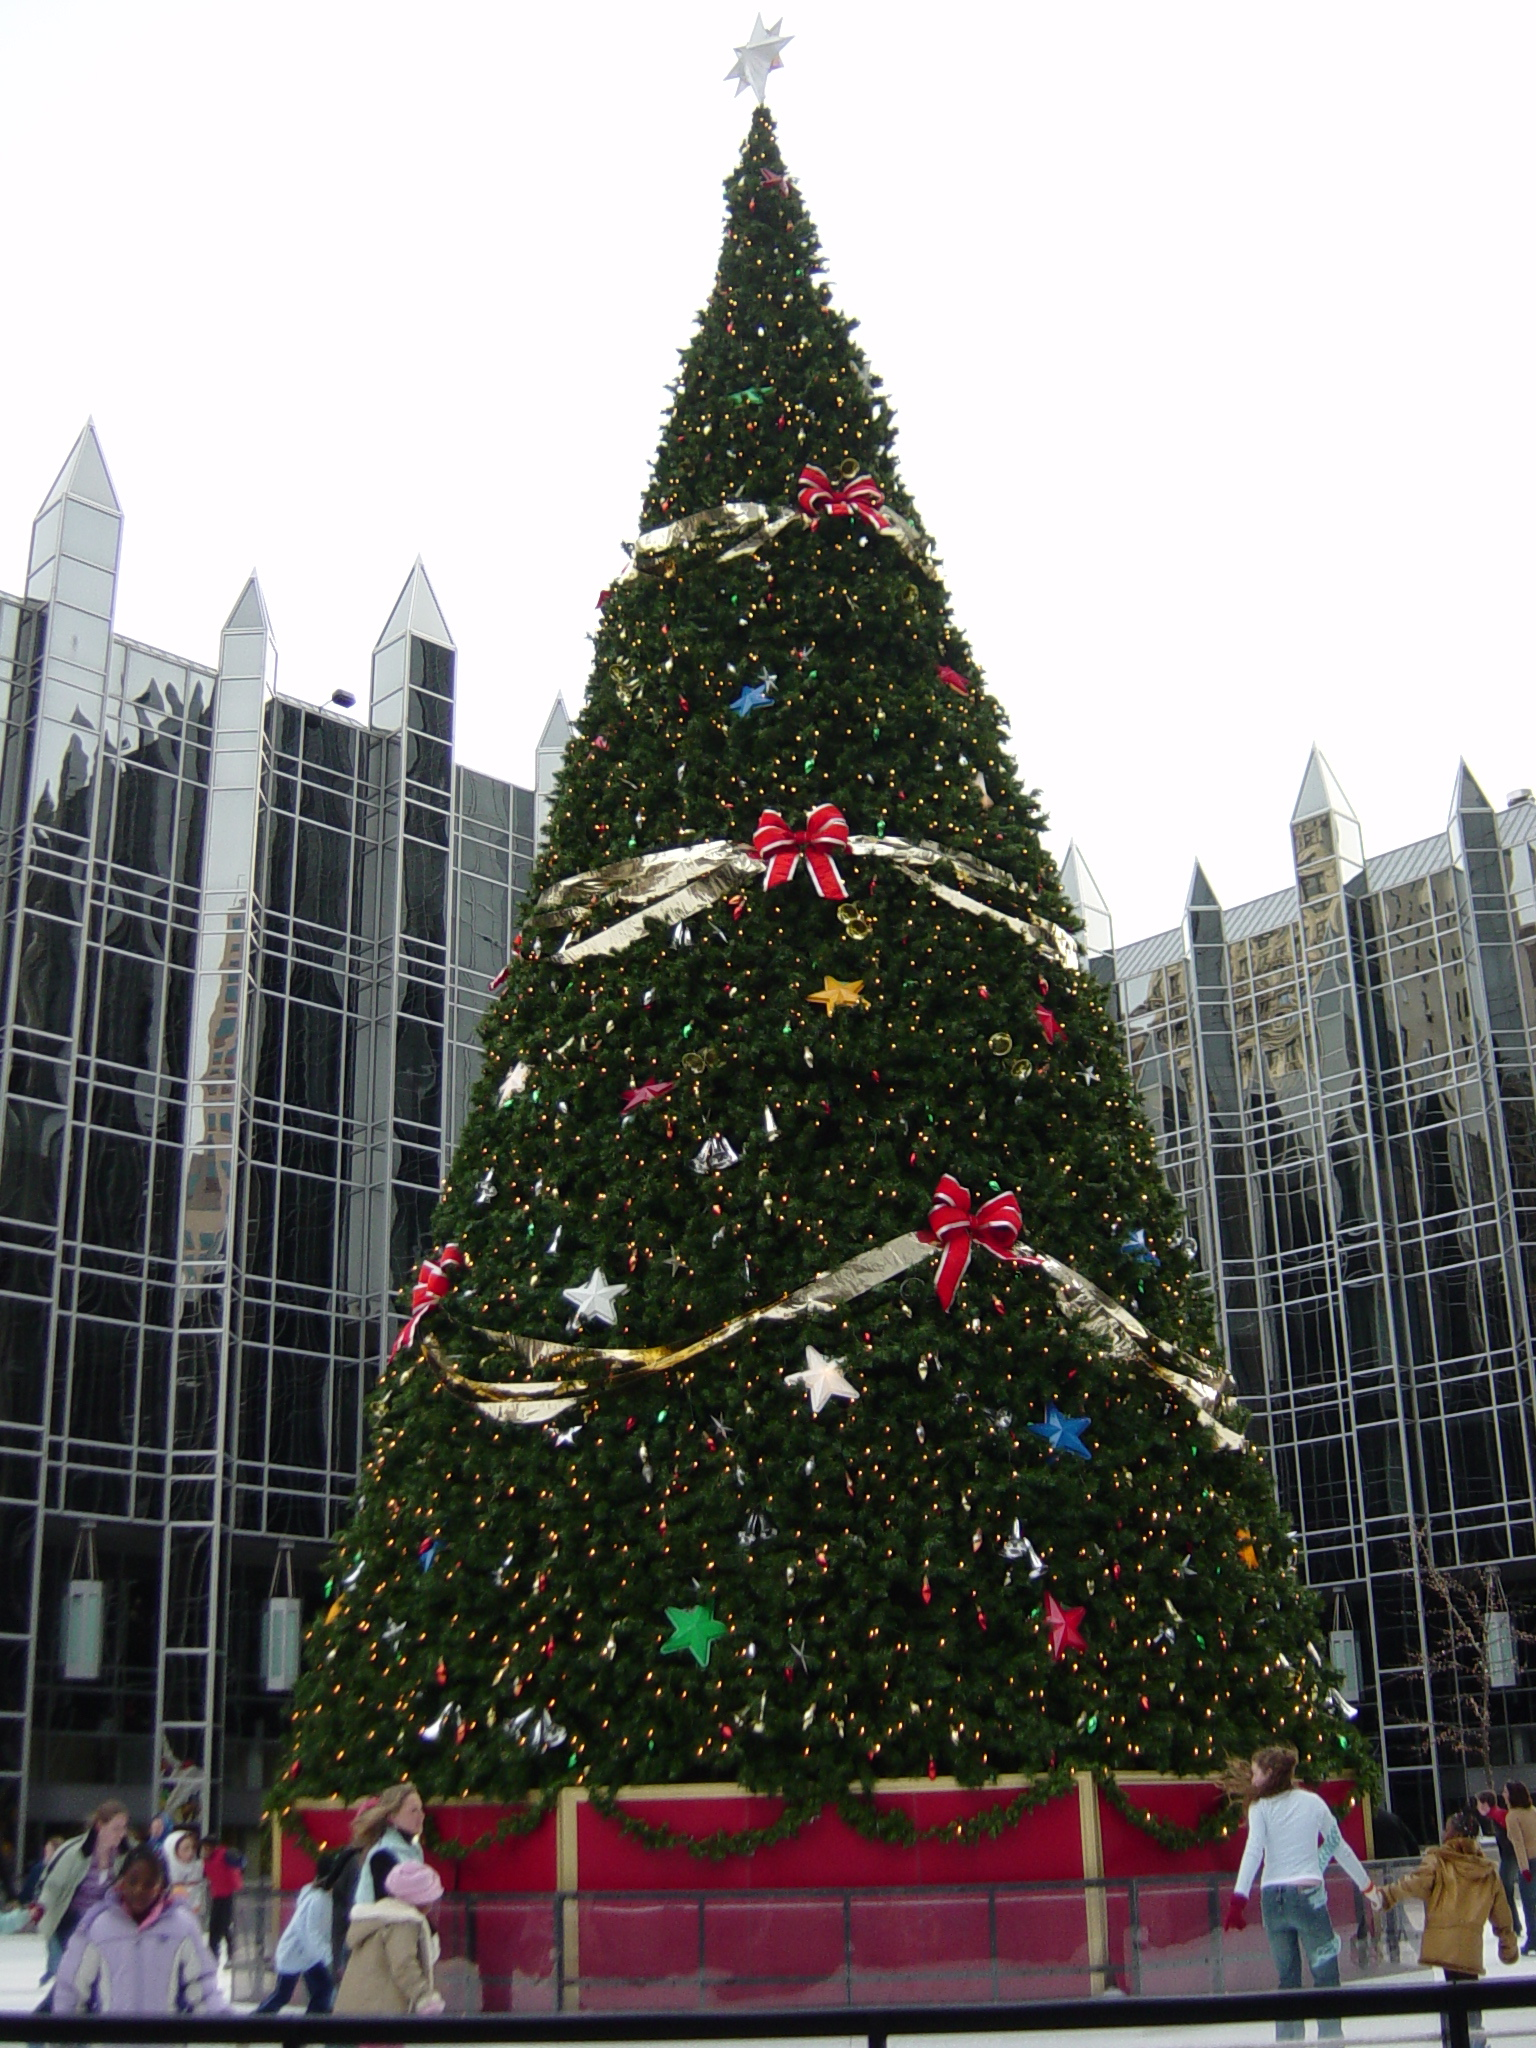 Large Outdoor Christmas Tree With Ice Skaters Skating Around It